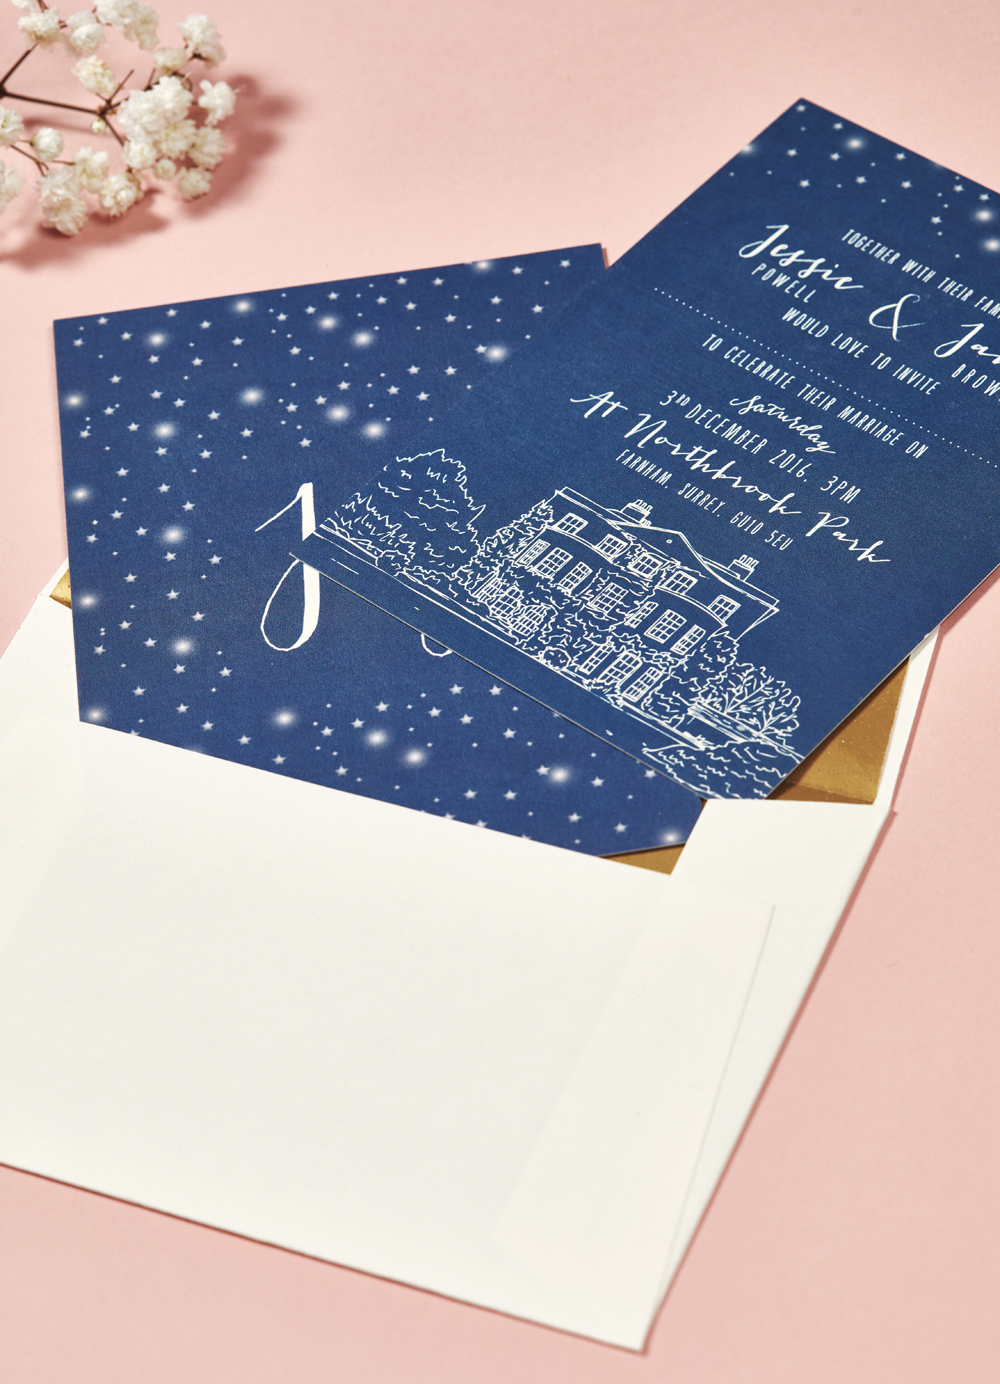 Jessie and James' bespoke wedding invitations